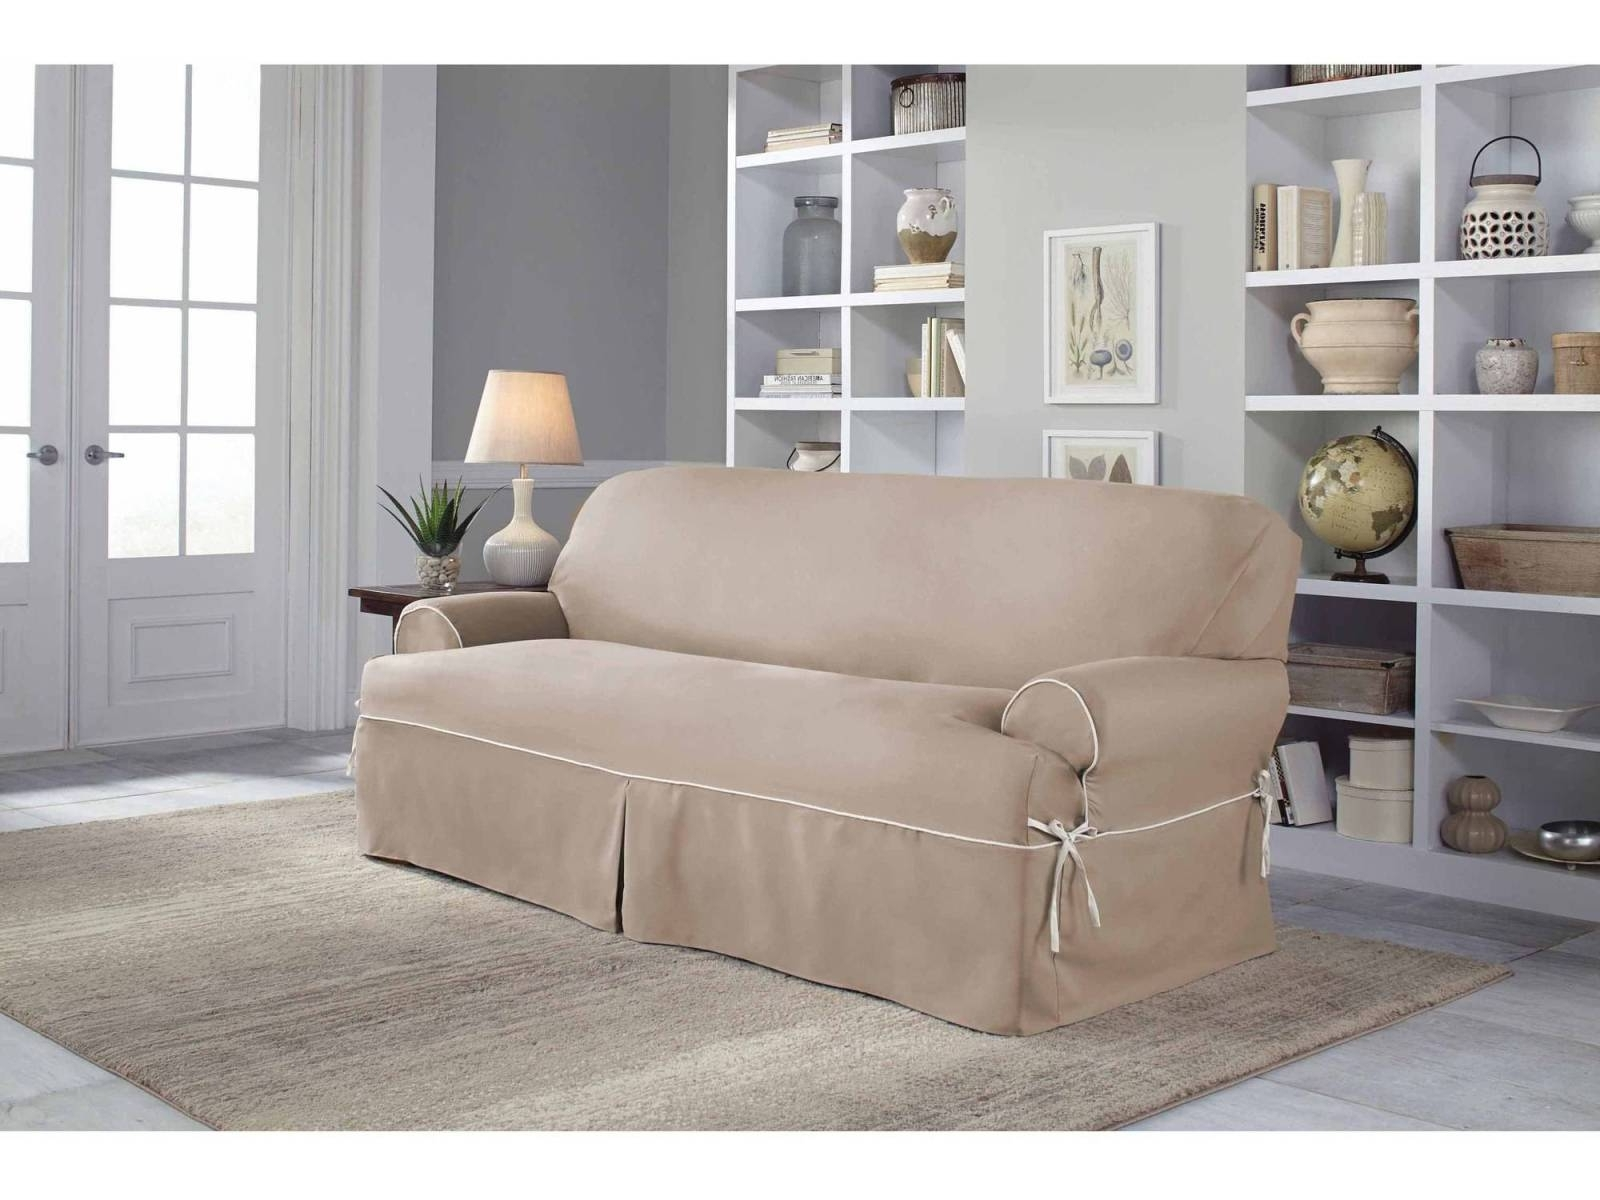 Most Up To Date Sofa : 7 Seater Sofa Set Covers Unique Sofa Covers Slipcovers With Extra Large Sofas (View 17 of 20)